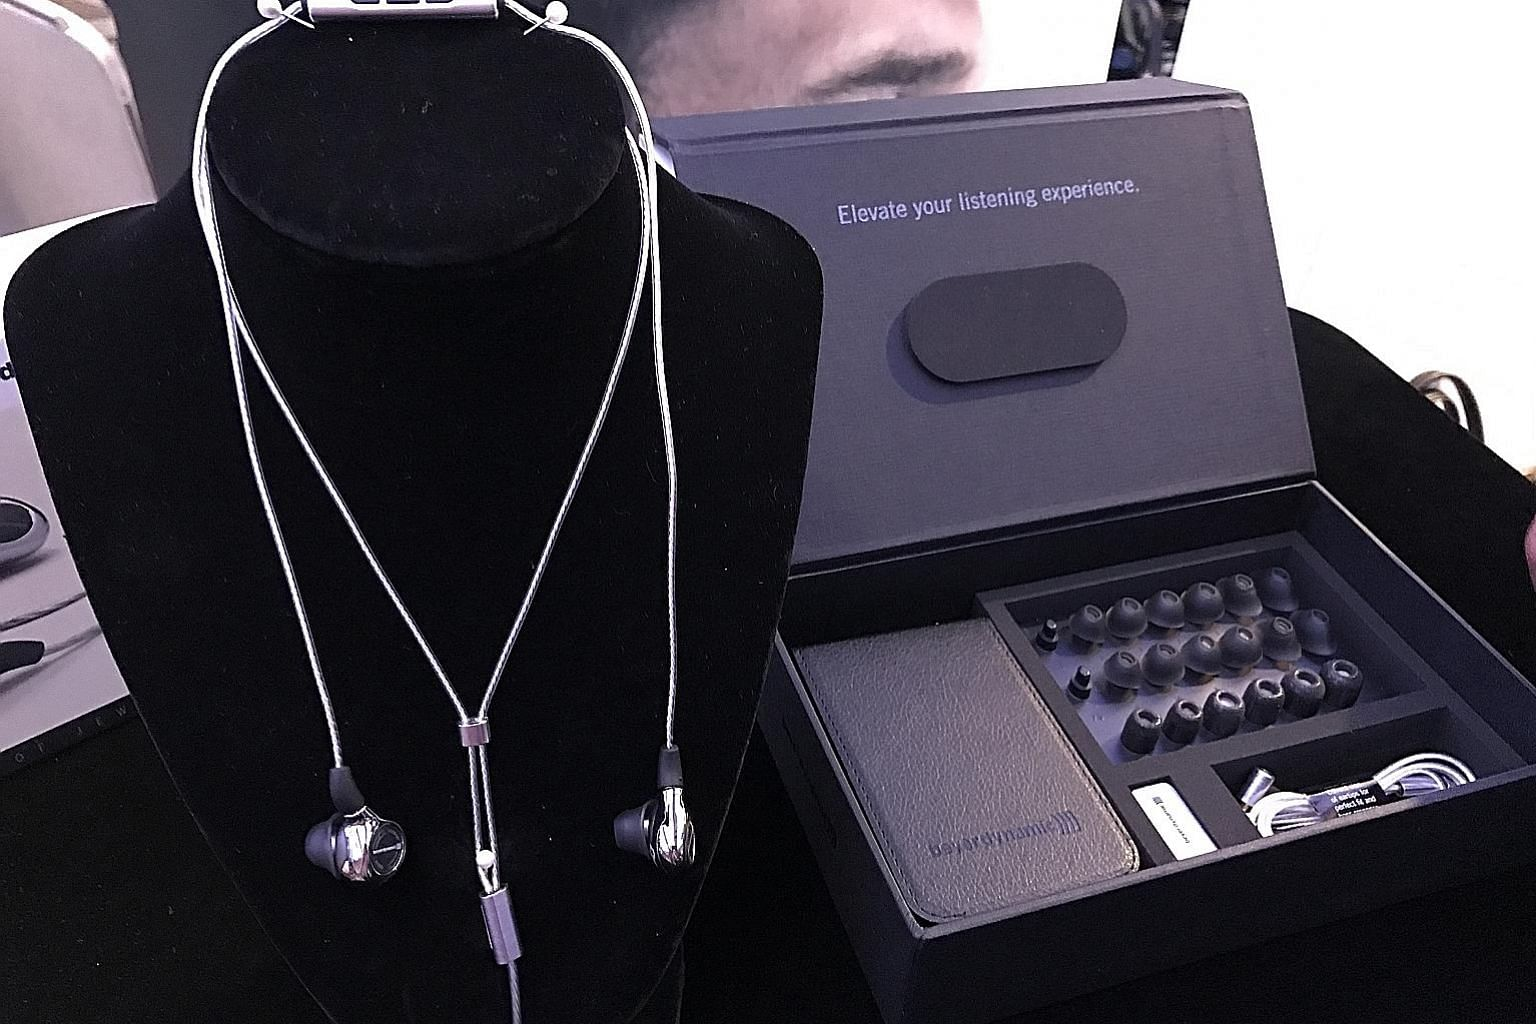 The $1,599 Xelento Remote is Beyerdynamic's most expensive in-ear earphones and might give serious audiophiles pause.